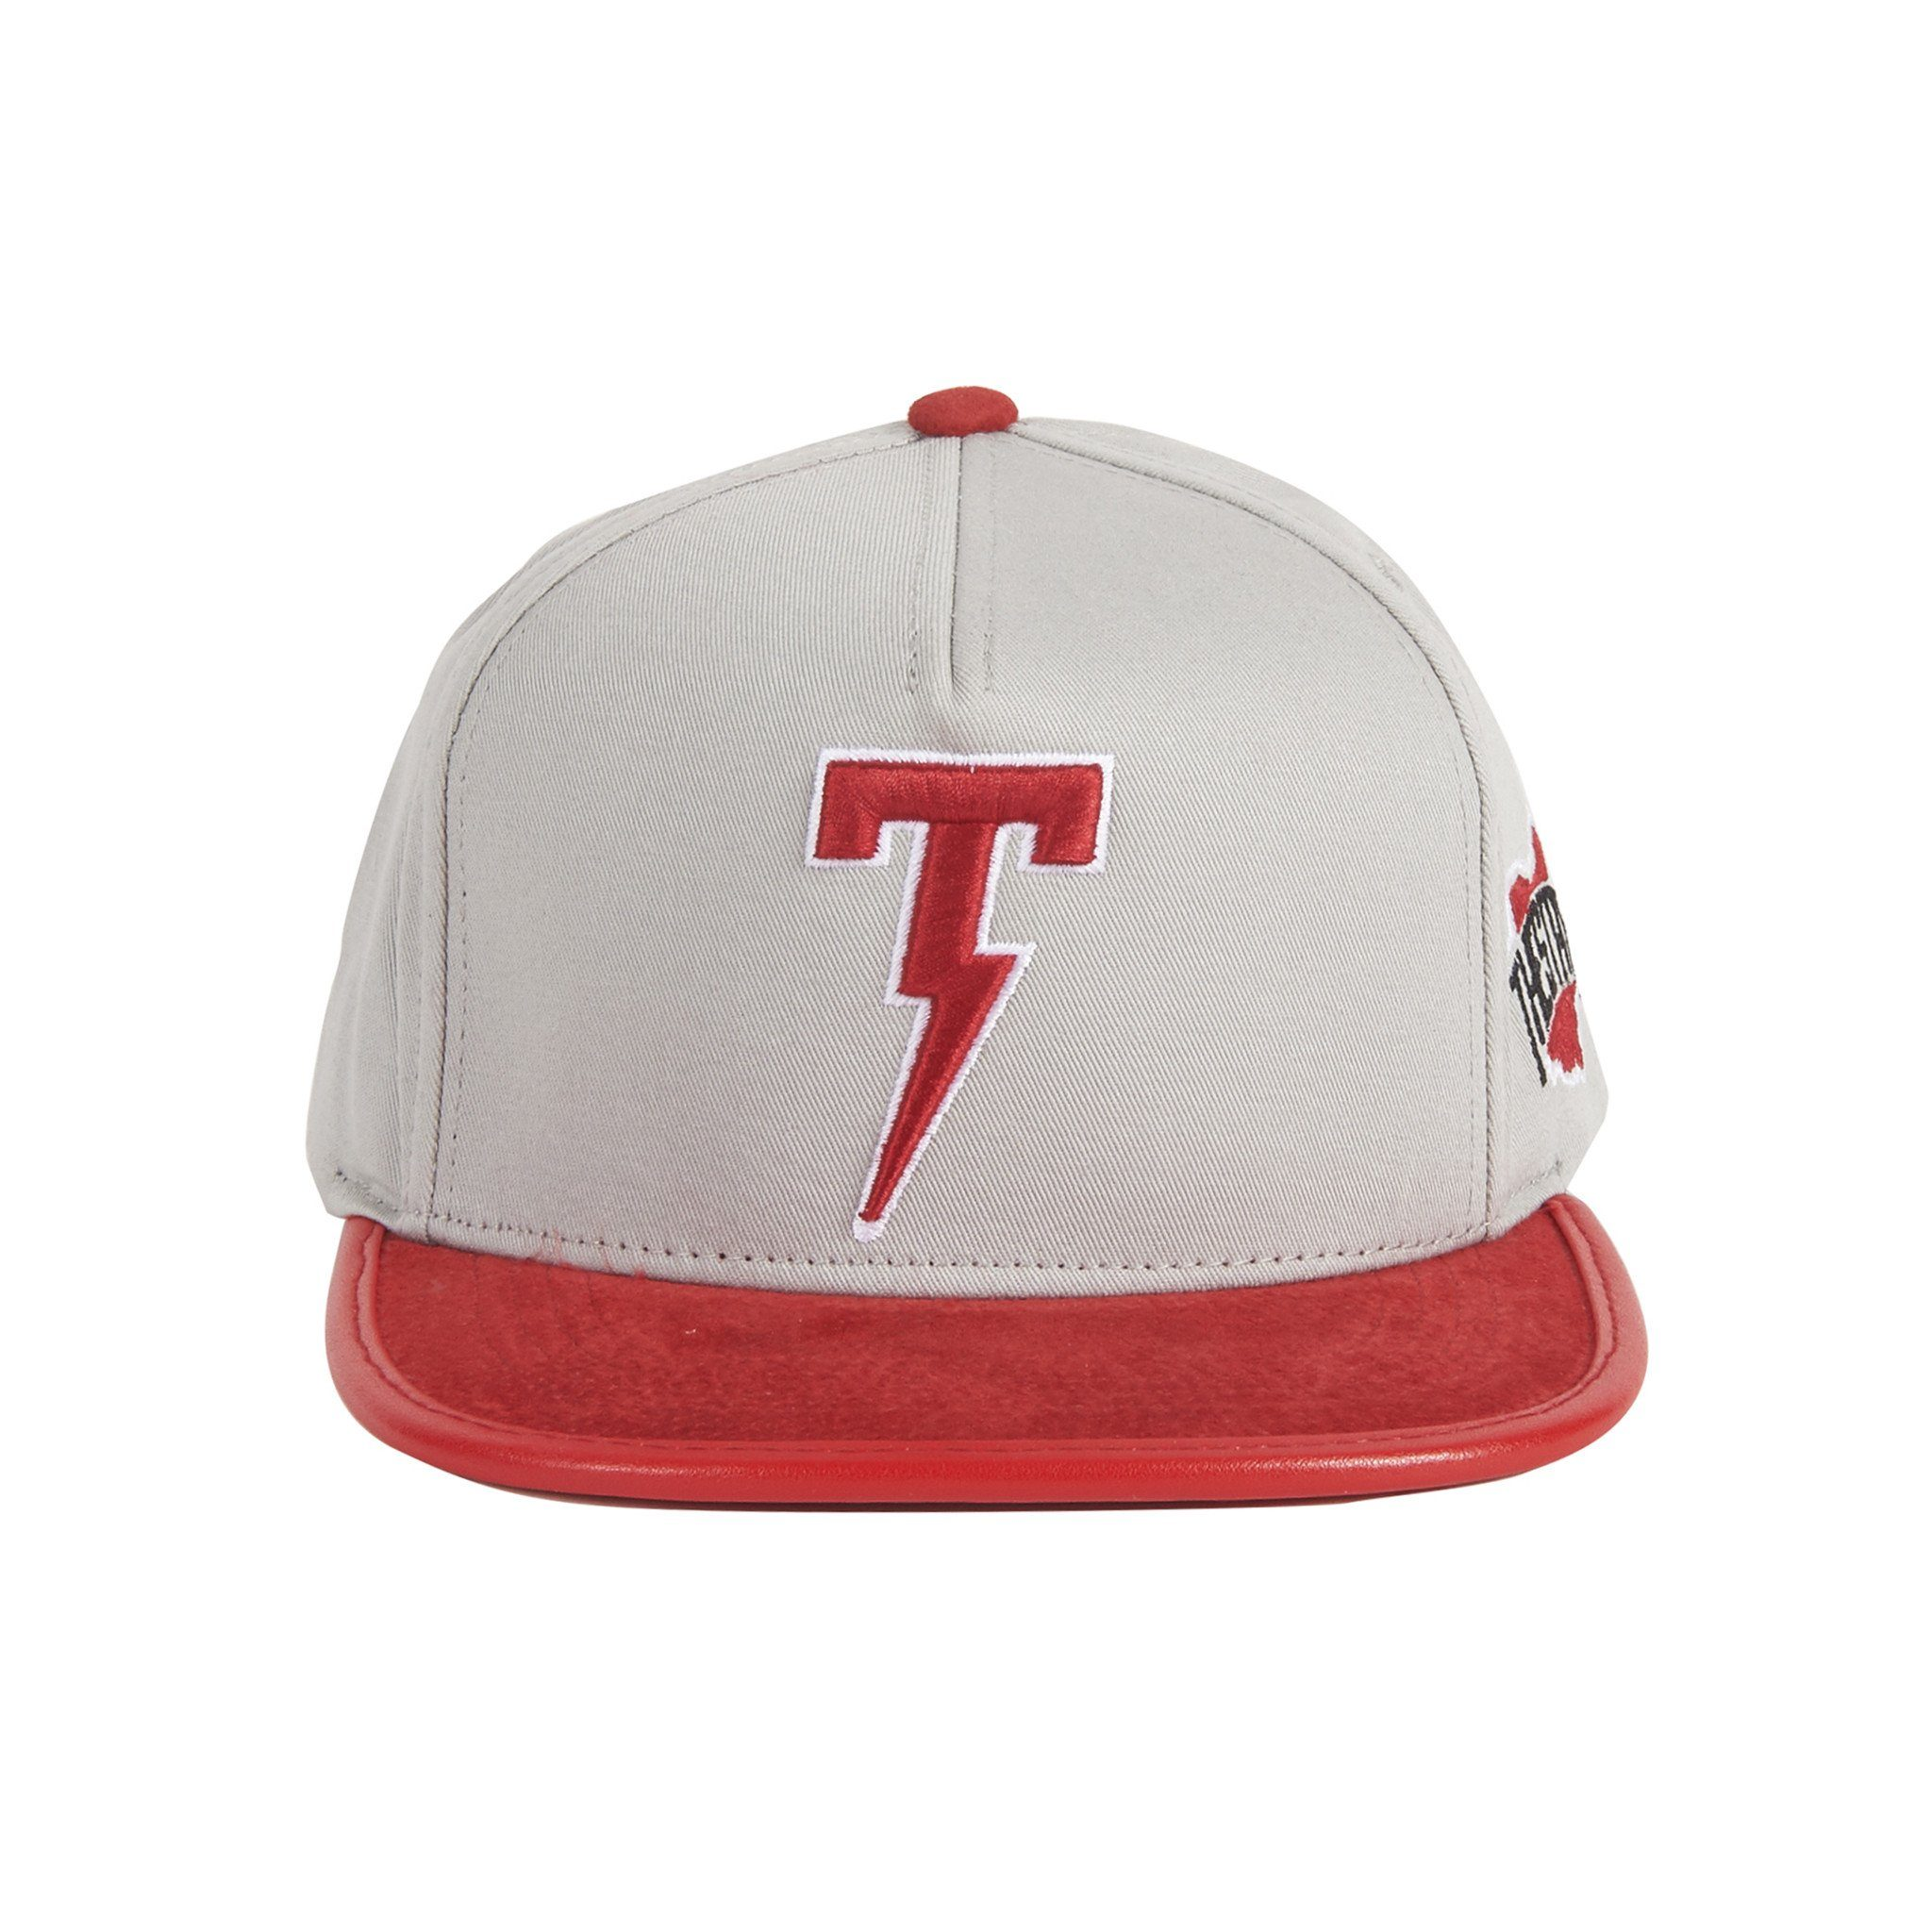 TACKMA The State Strapback